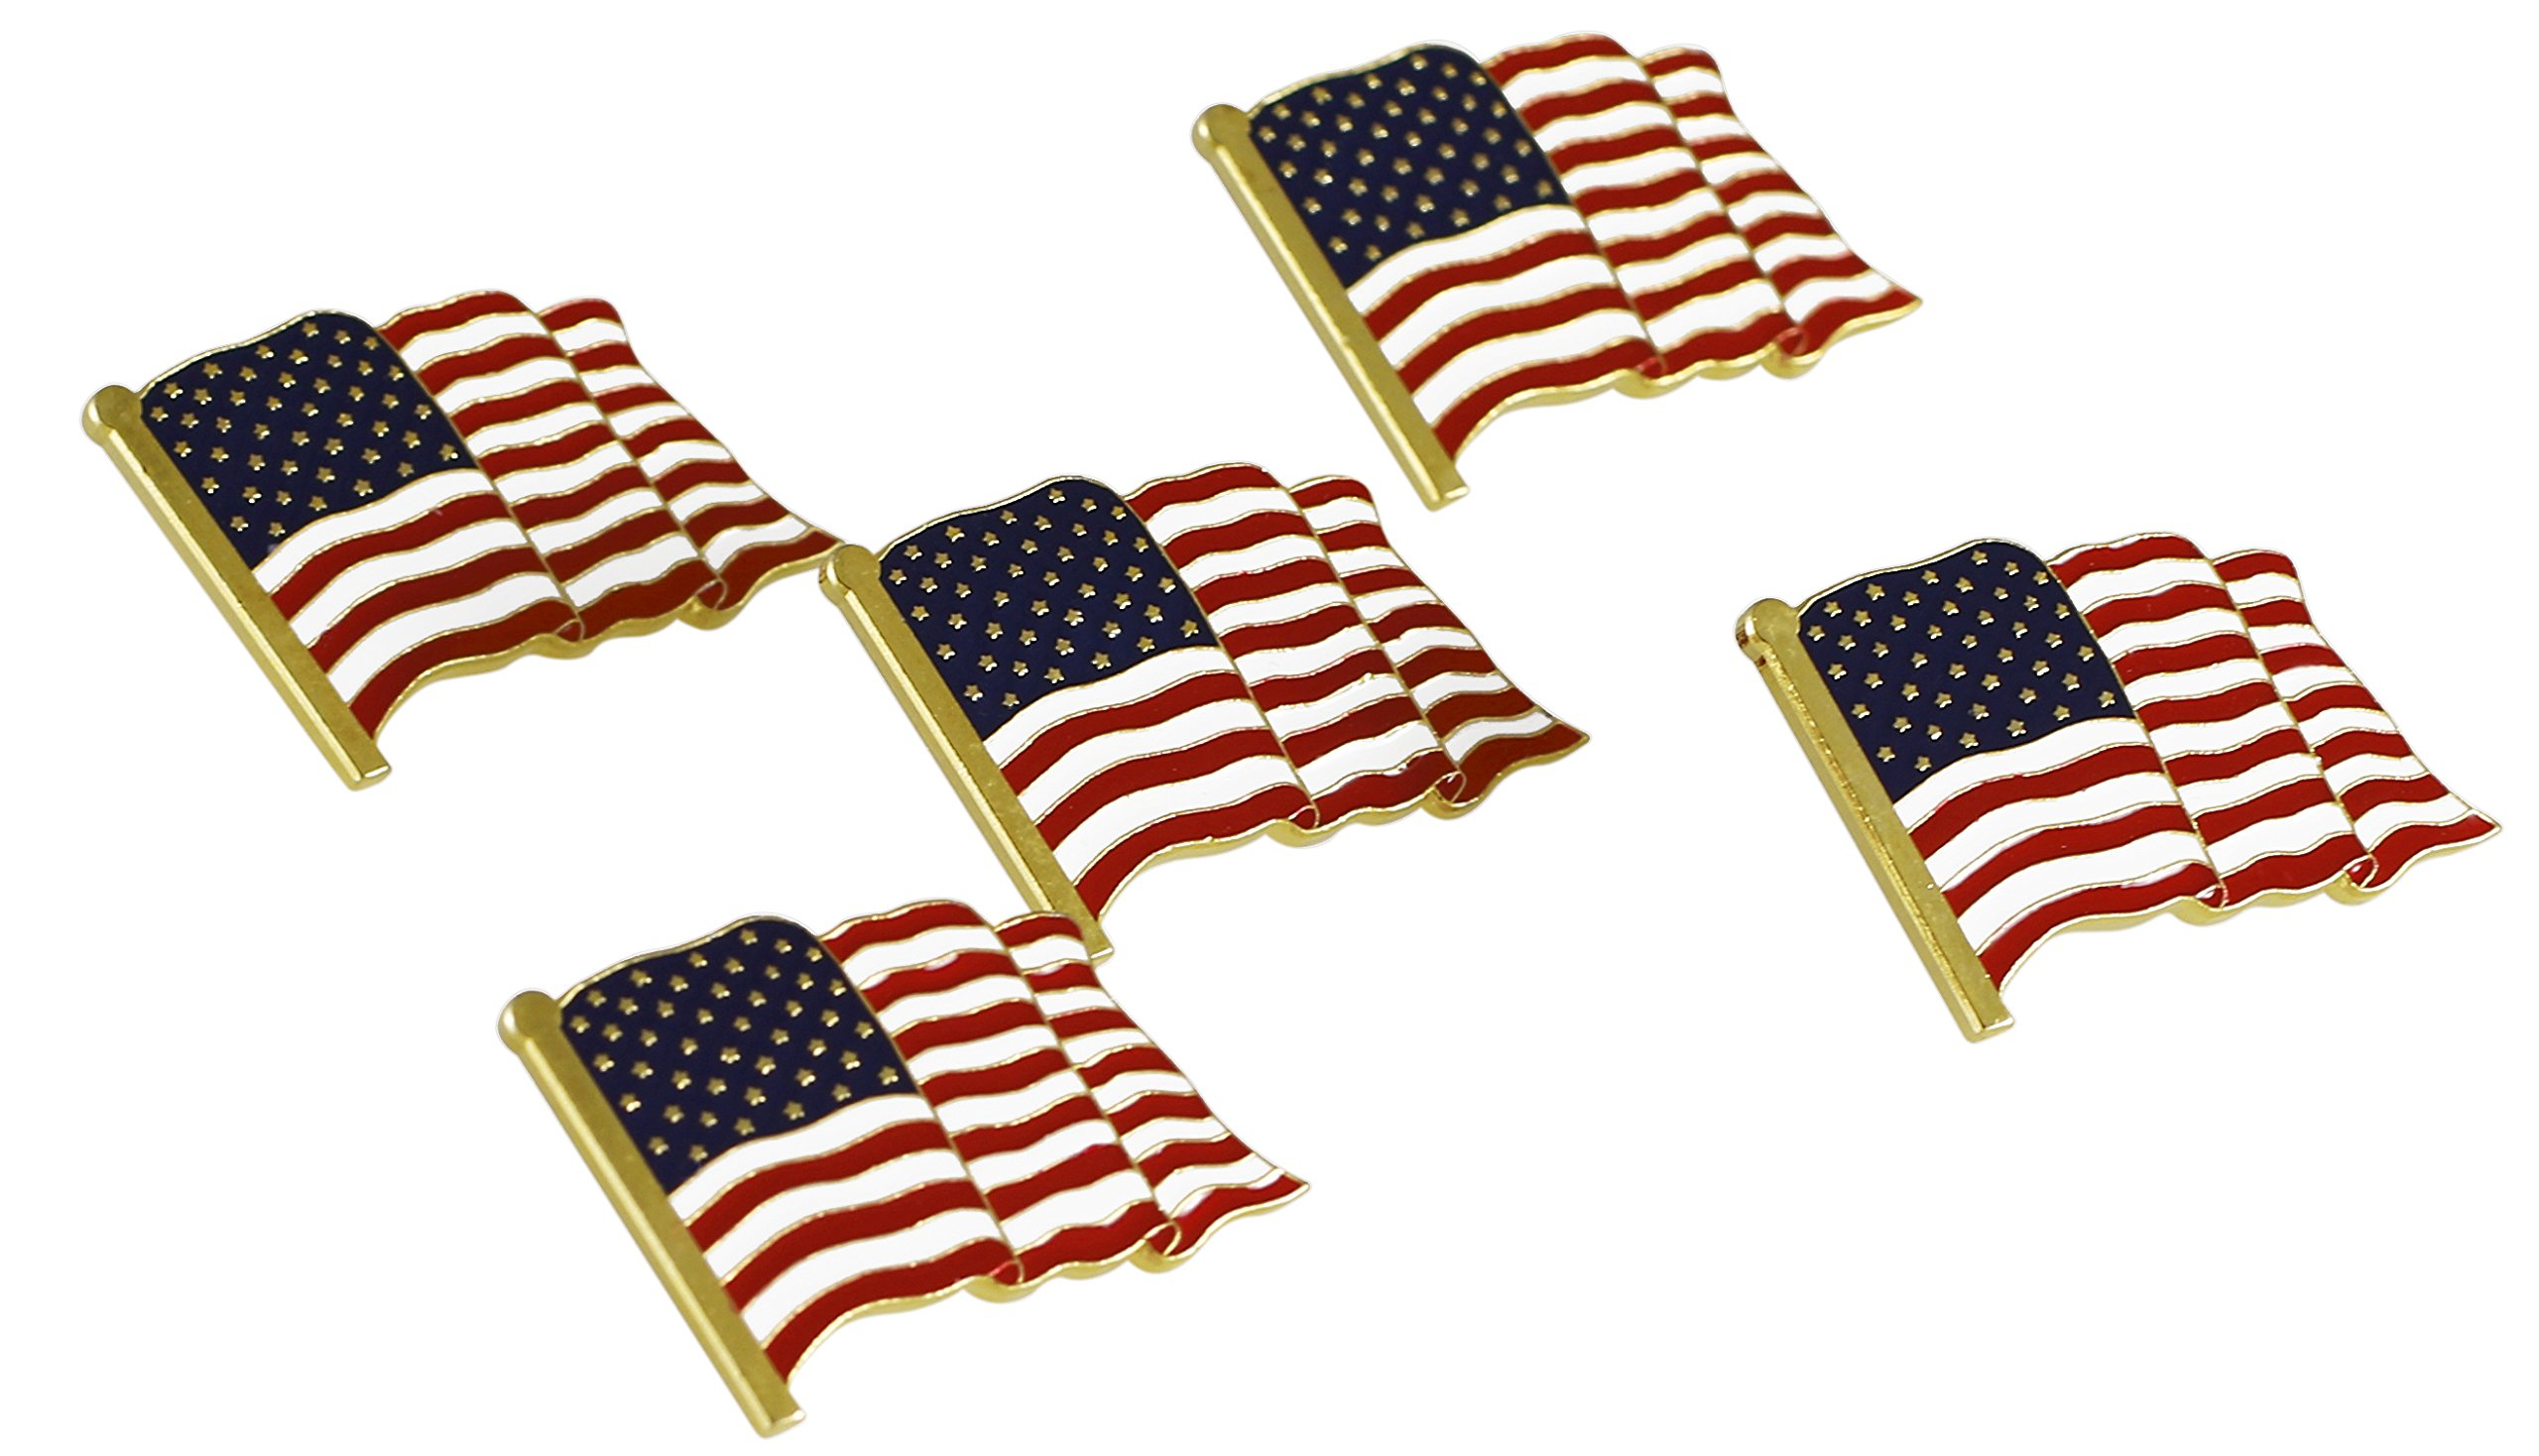 American Flag Lapel Pin Proudly Made in USA (10 Pack)